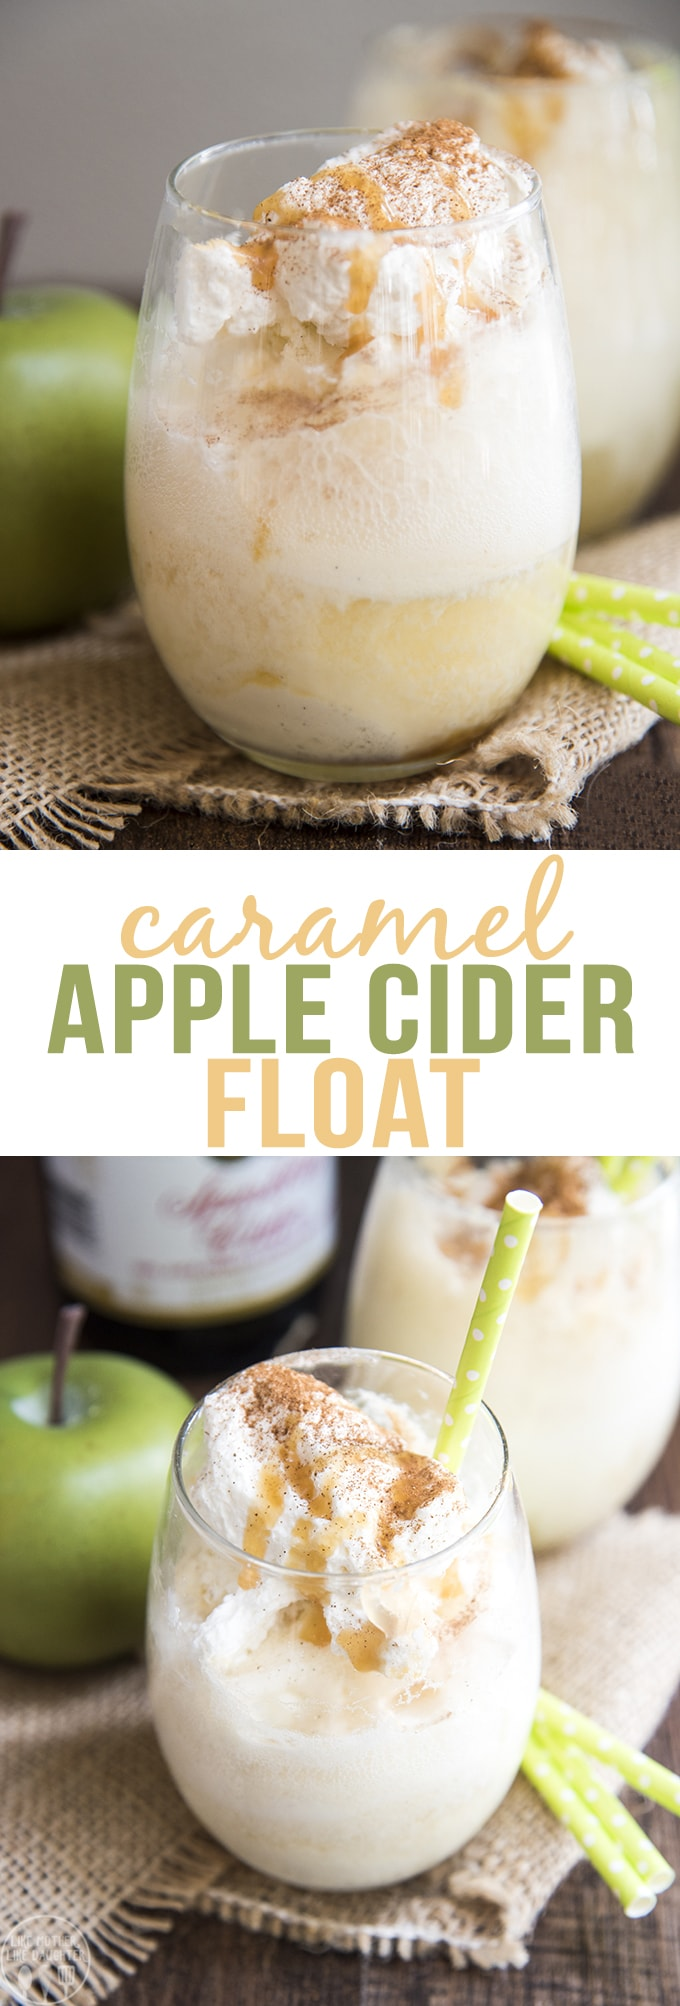 Caramel Apple Cider Floats are the perfect combination of sparkling apple cider and vanilla ice cream, topped with caramel syrup, and a dollop of whipped cream and you have the perfect drink!